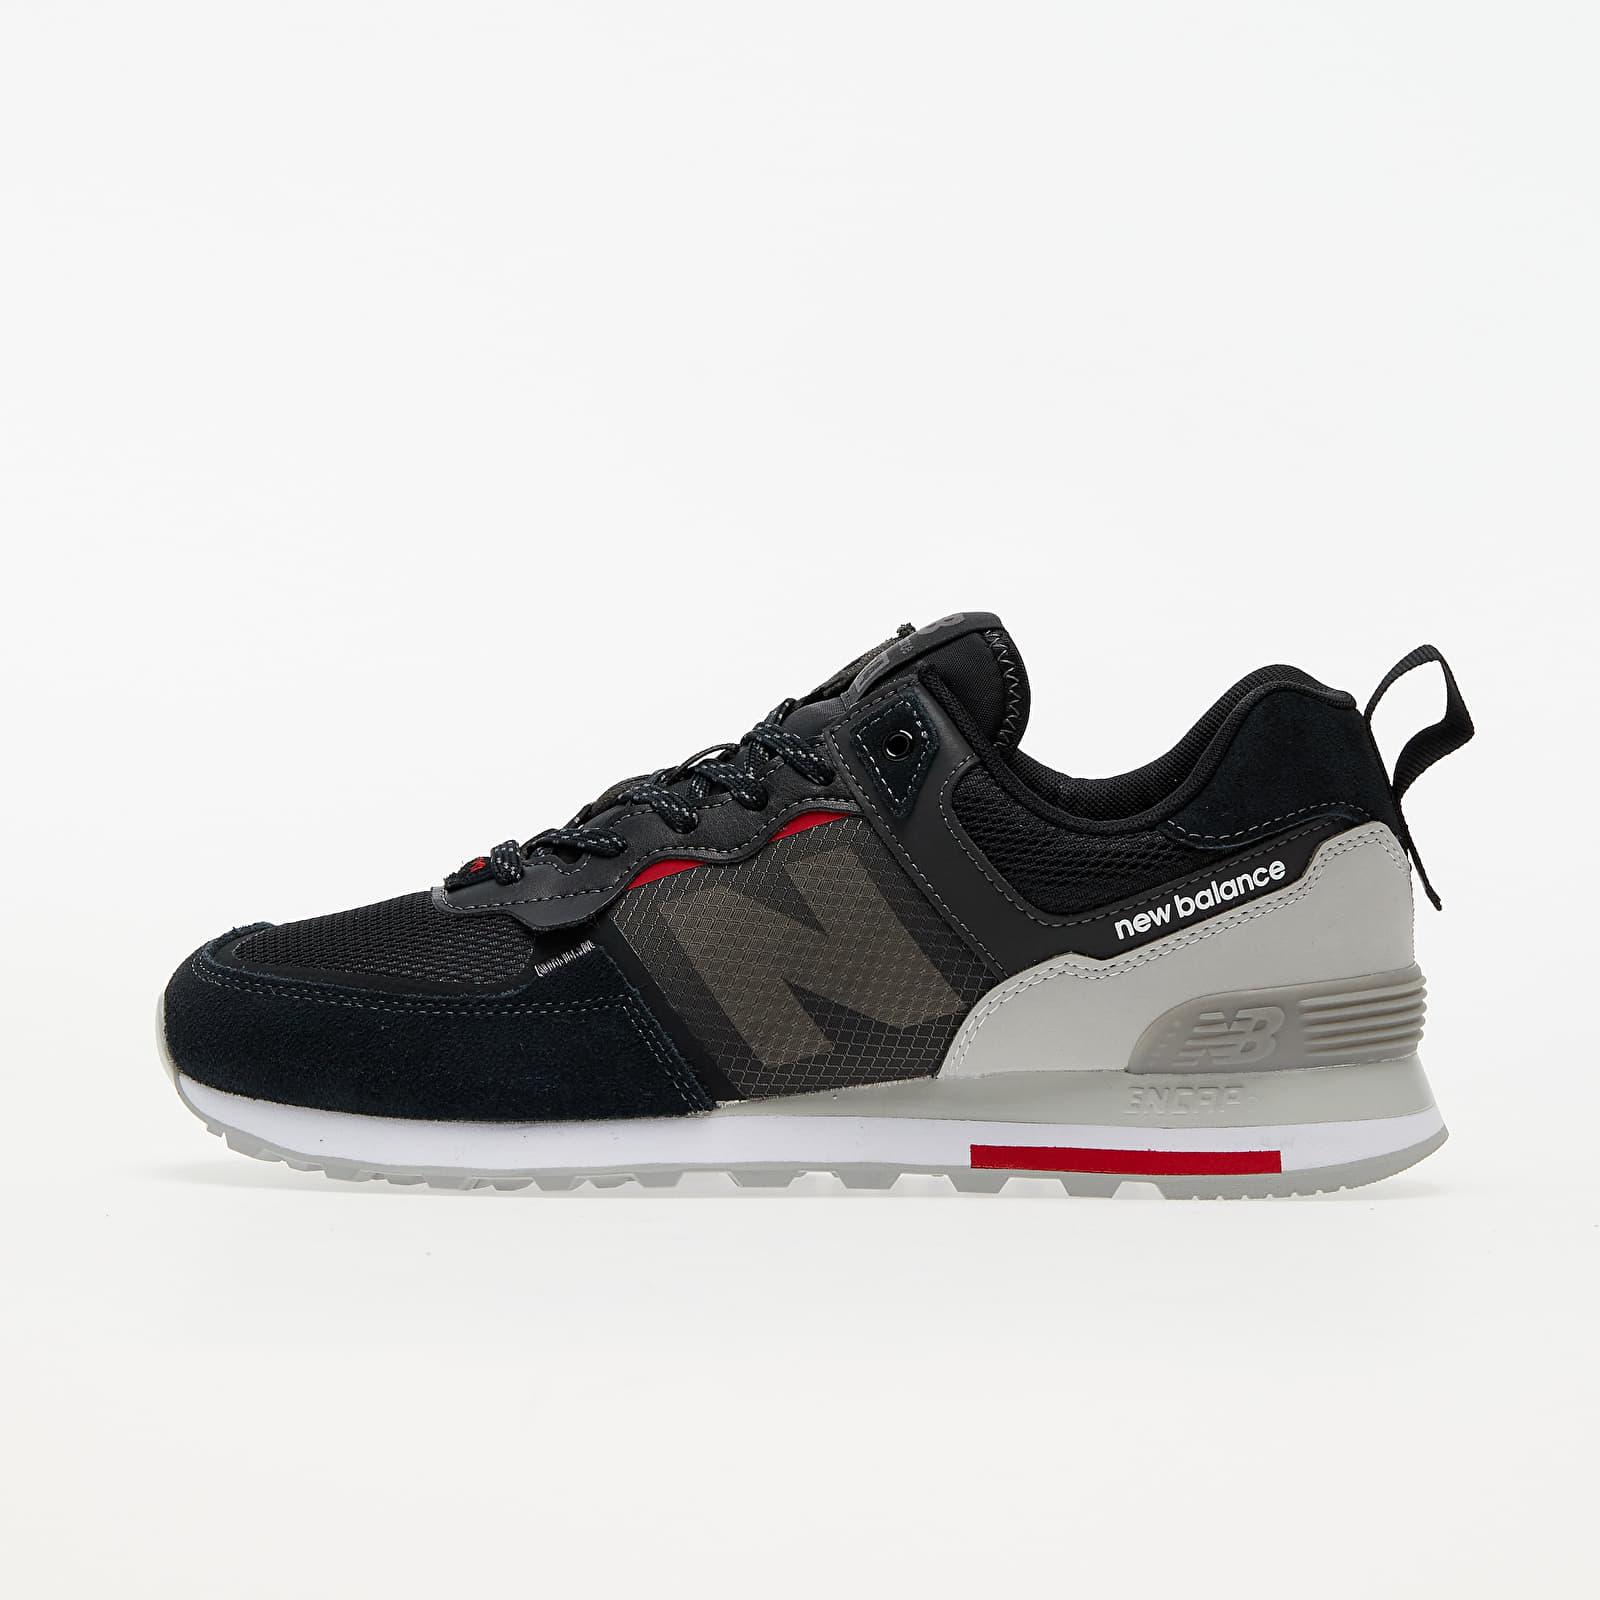 New Balance 574 Black/ Grey EUR 41.5